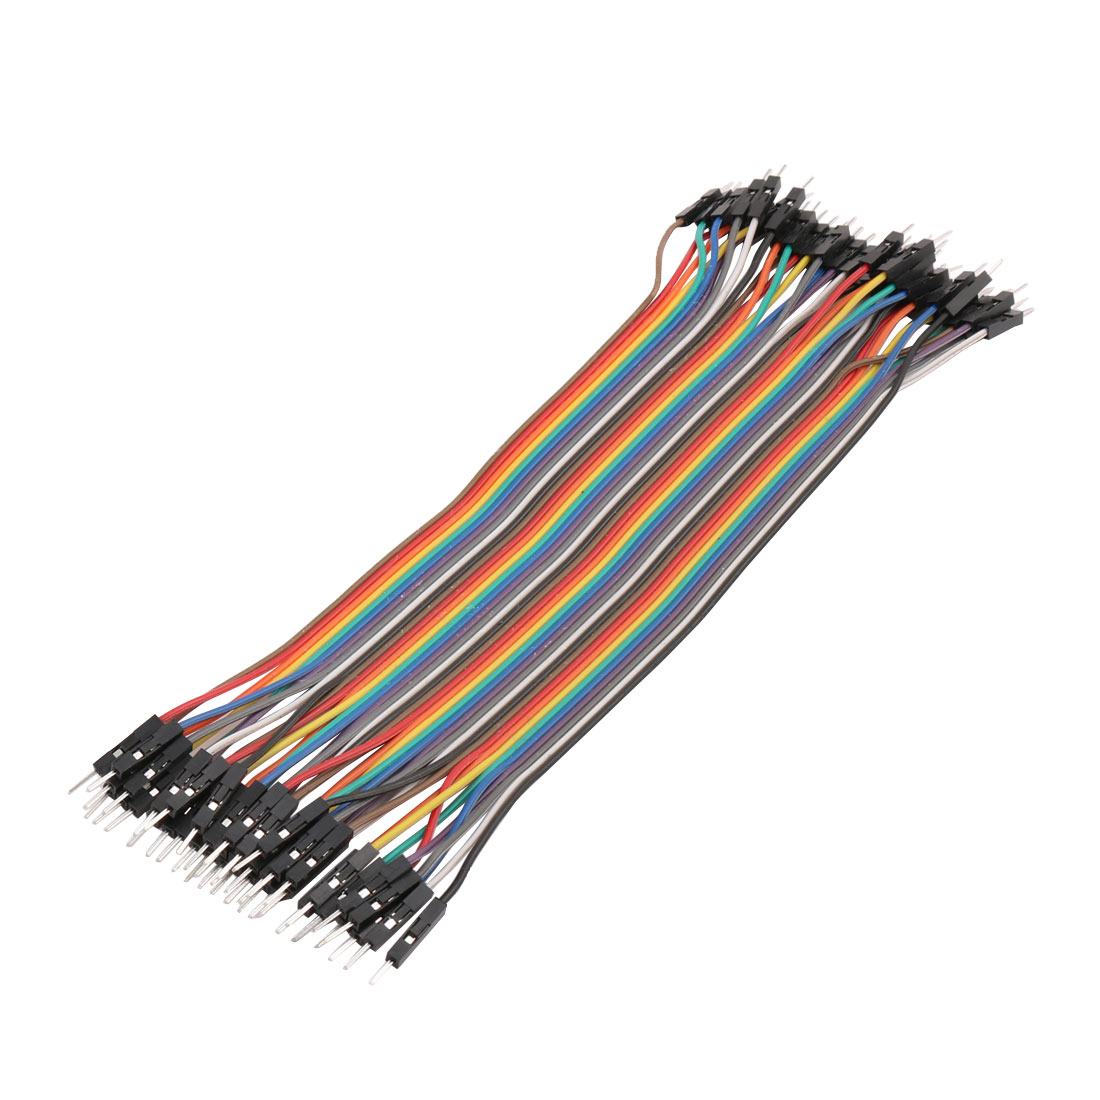 40Pin 21cm Male to Male Plug Jumper Cable Wire 2.54mm Pin Pitch